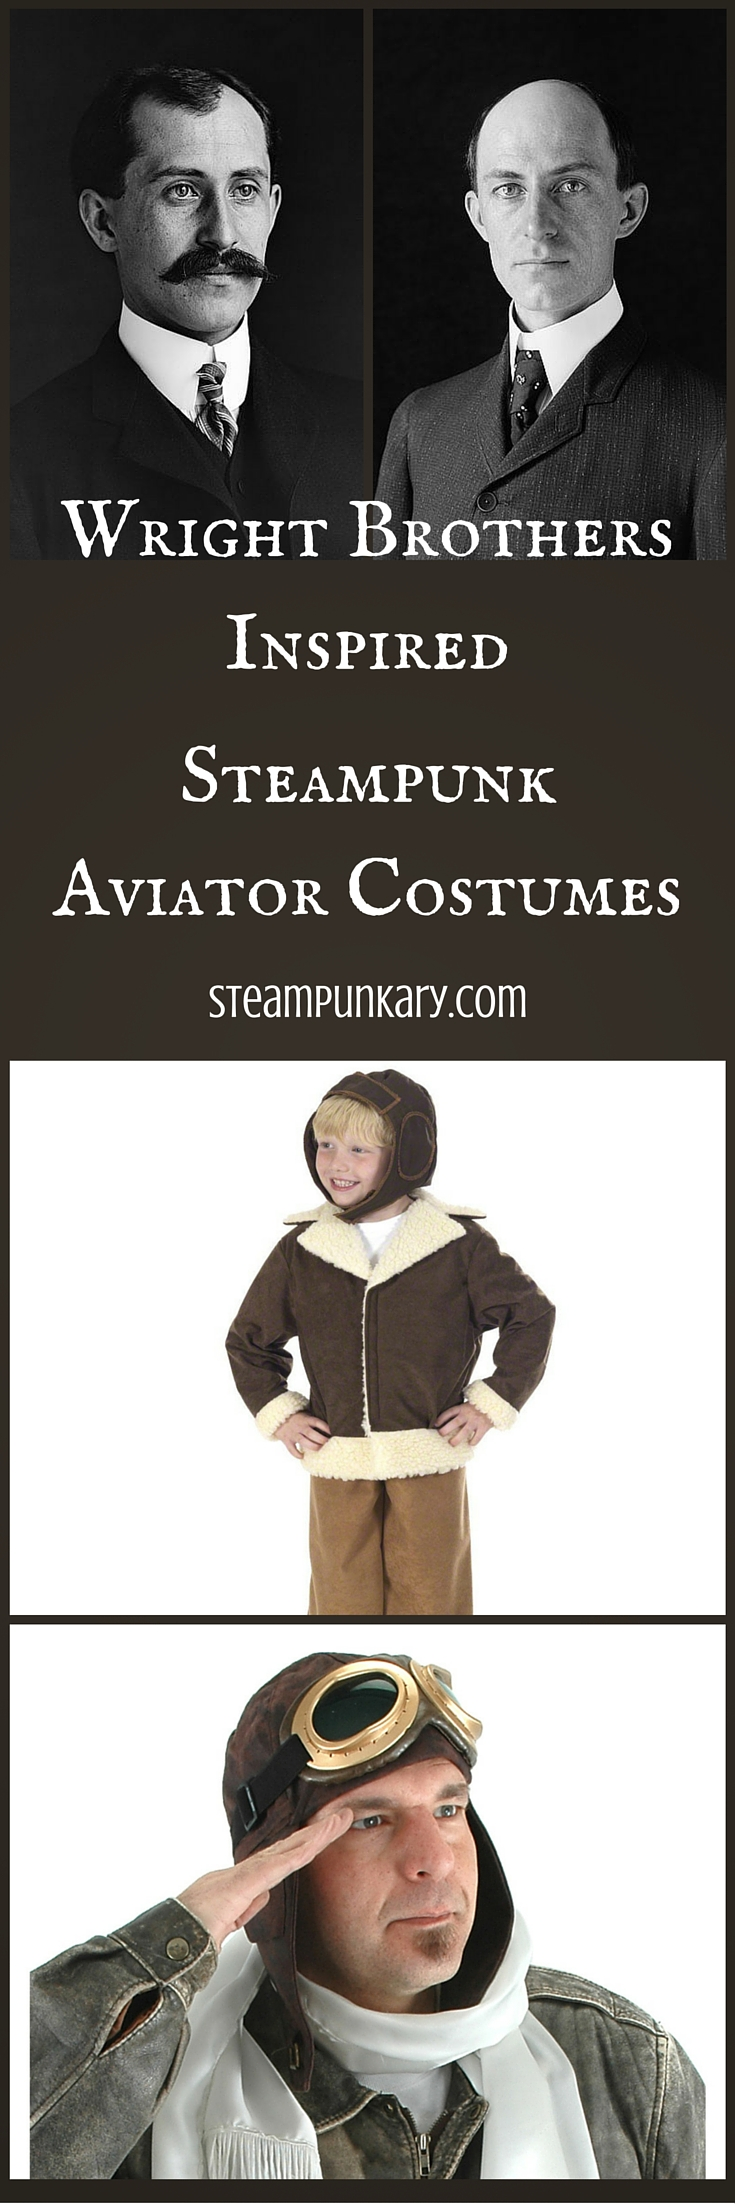 Wright Brothers Inspired Steampunk Aviator Costumes